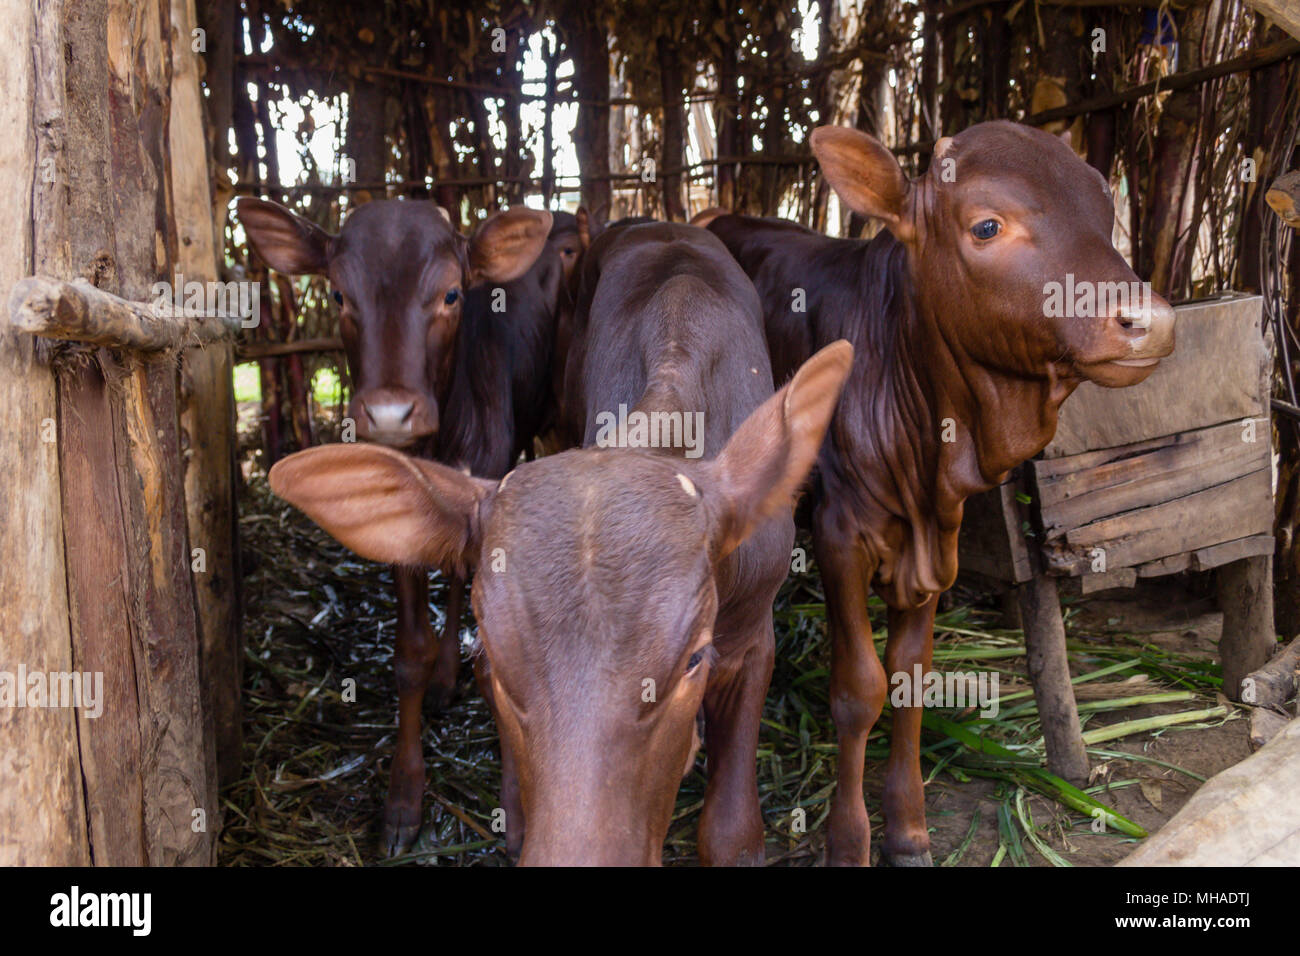 The African Long-Horned Cow (Ankole-Watusi), descended from the Ethiopian Sanga Cattle, are known as the Cattle of Kings. - Stock Image